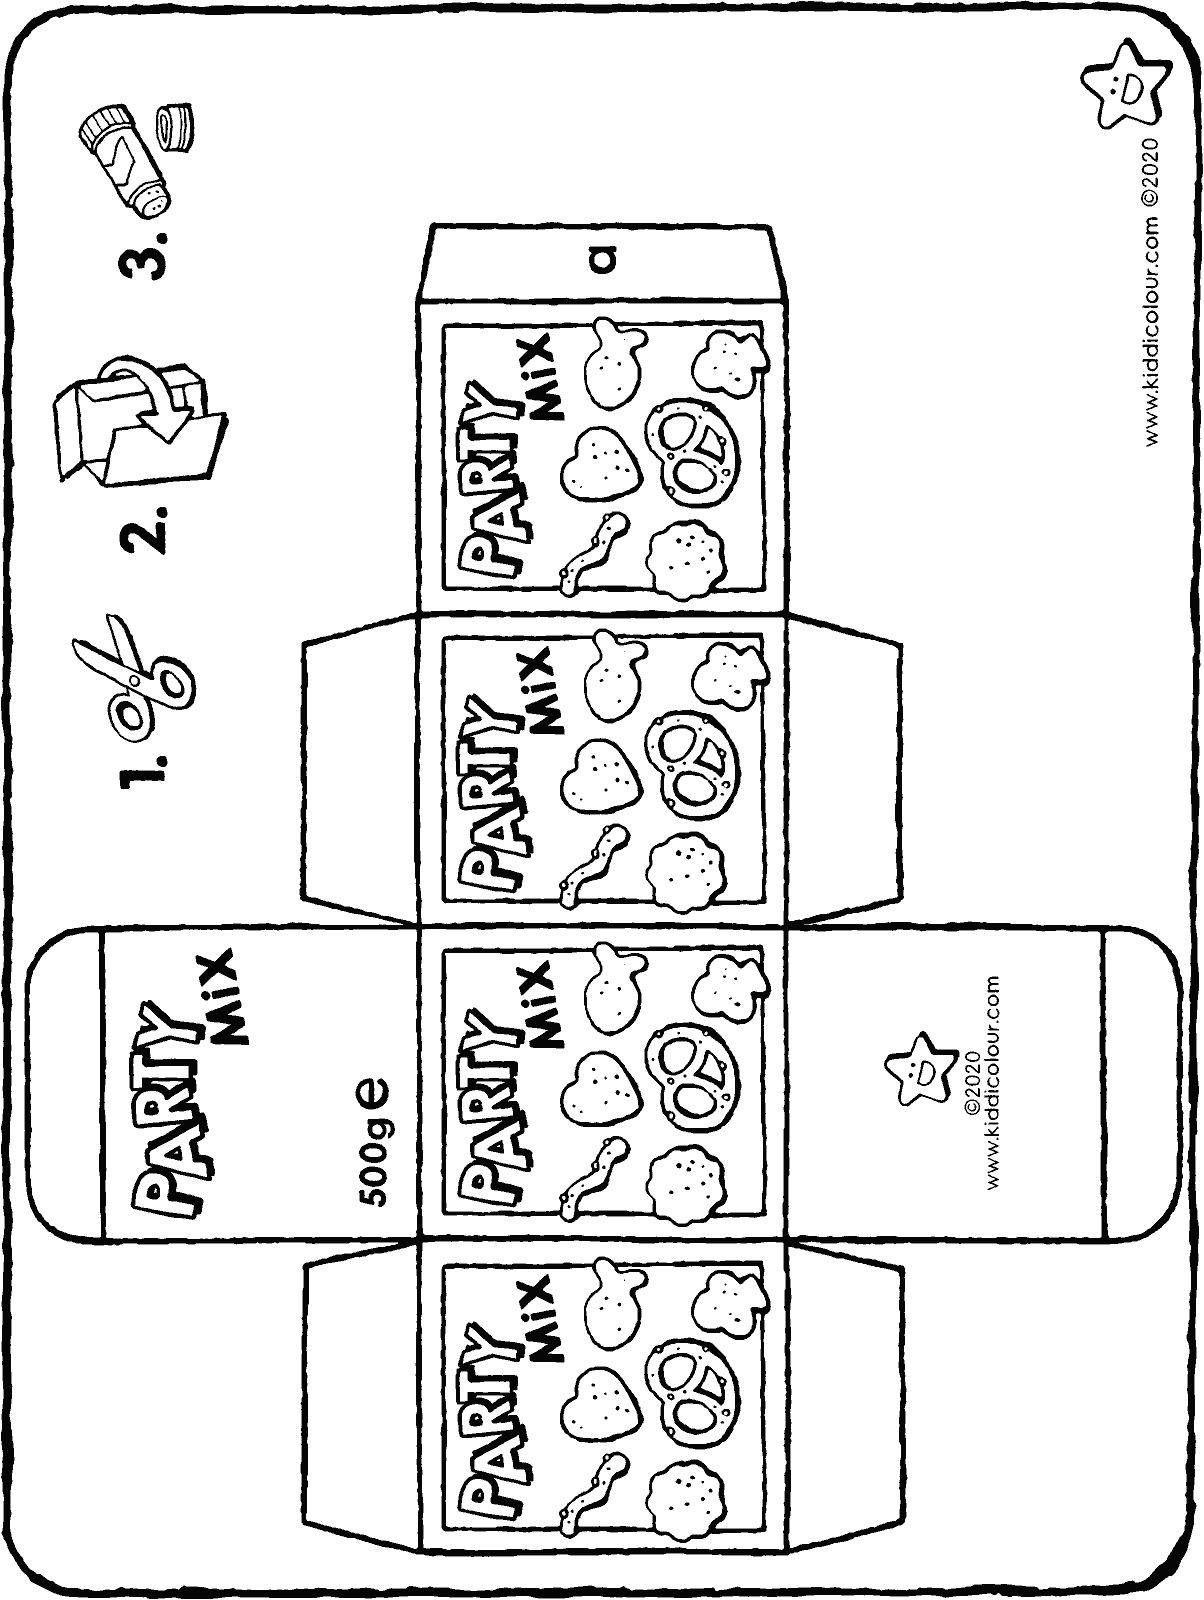 make your own party mix packet colouring page drawing picture 01H